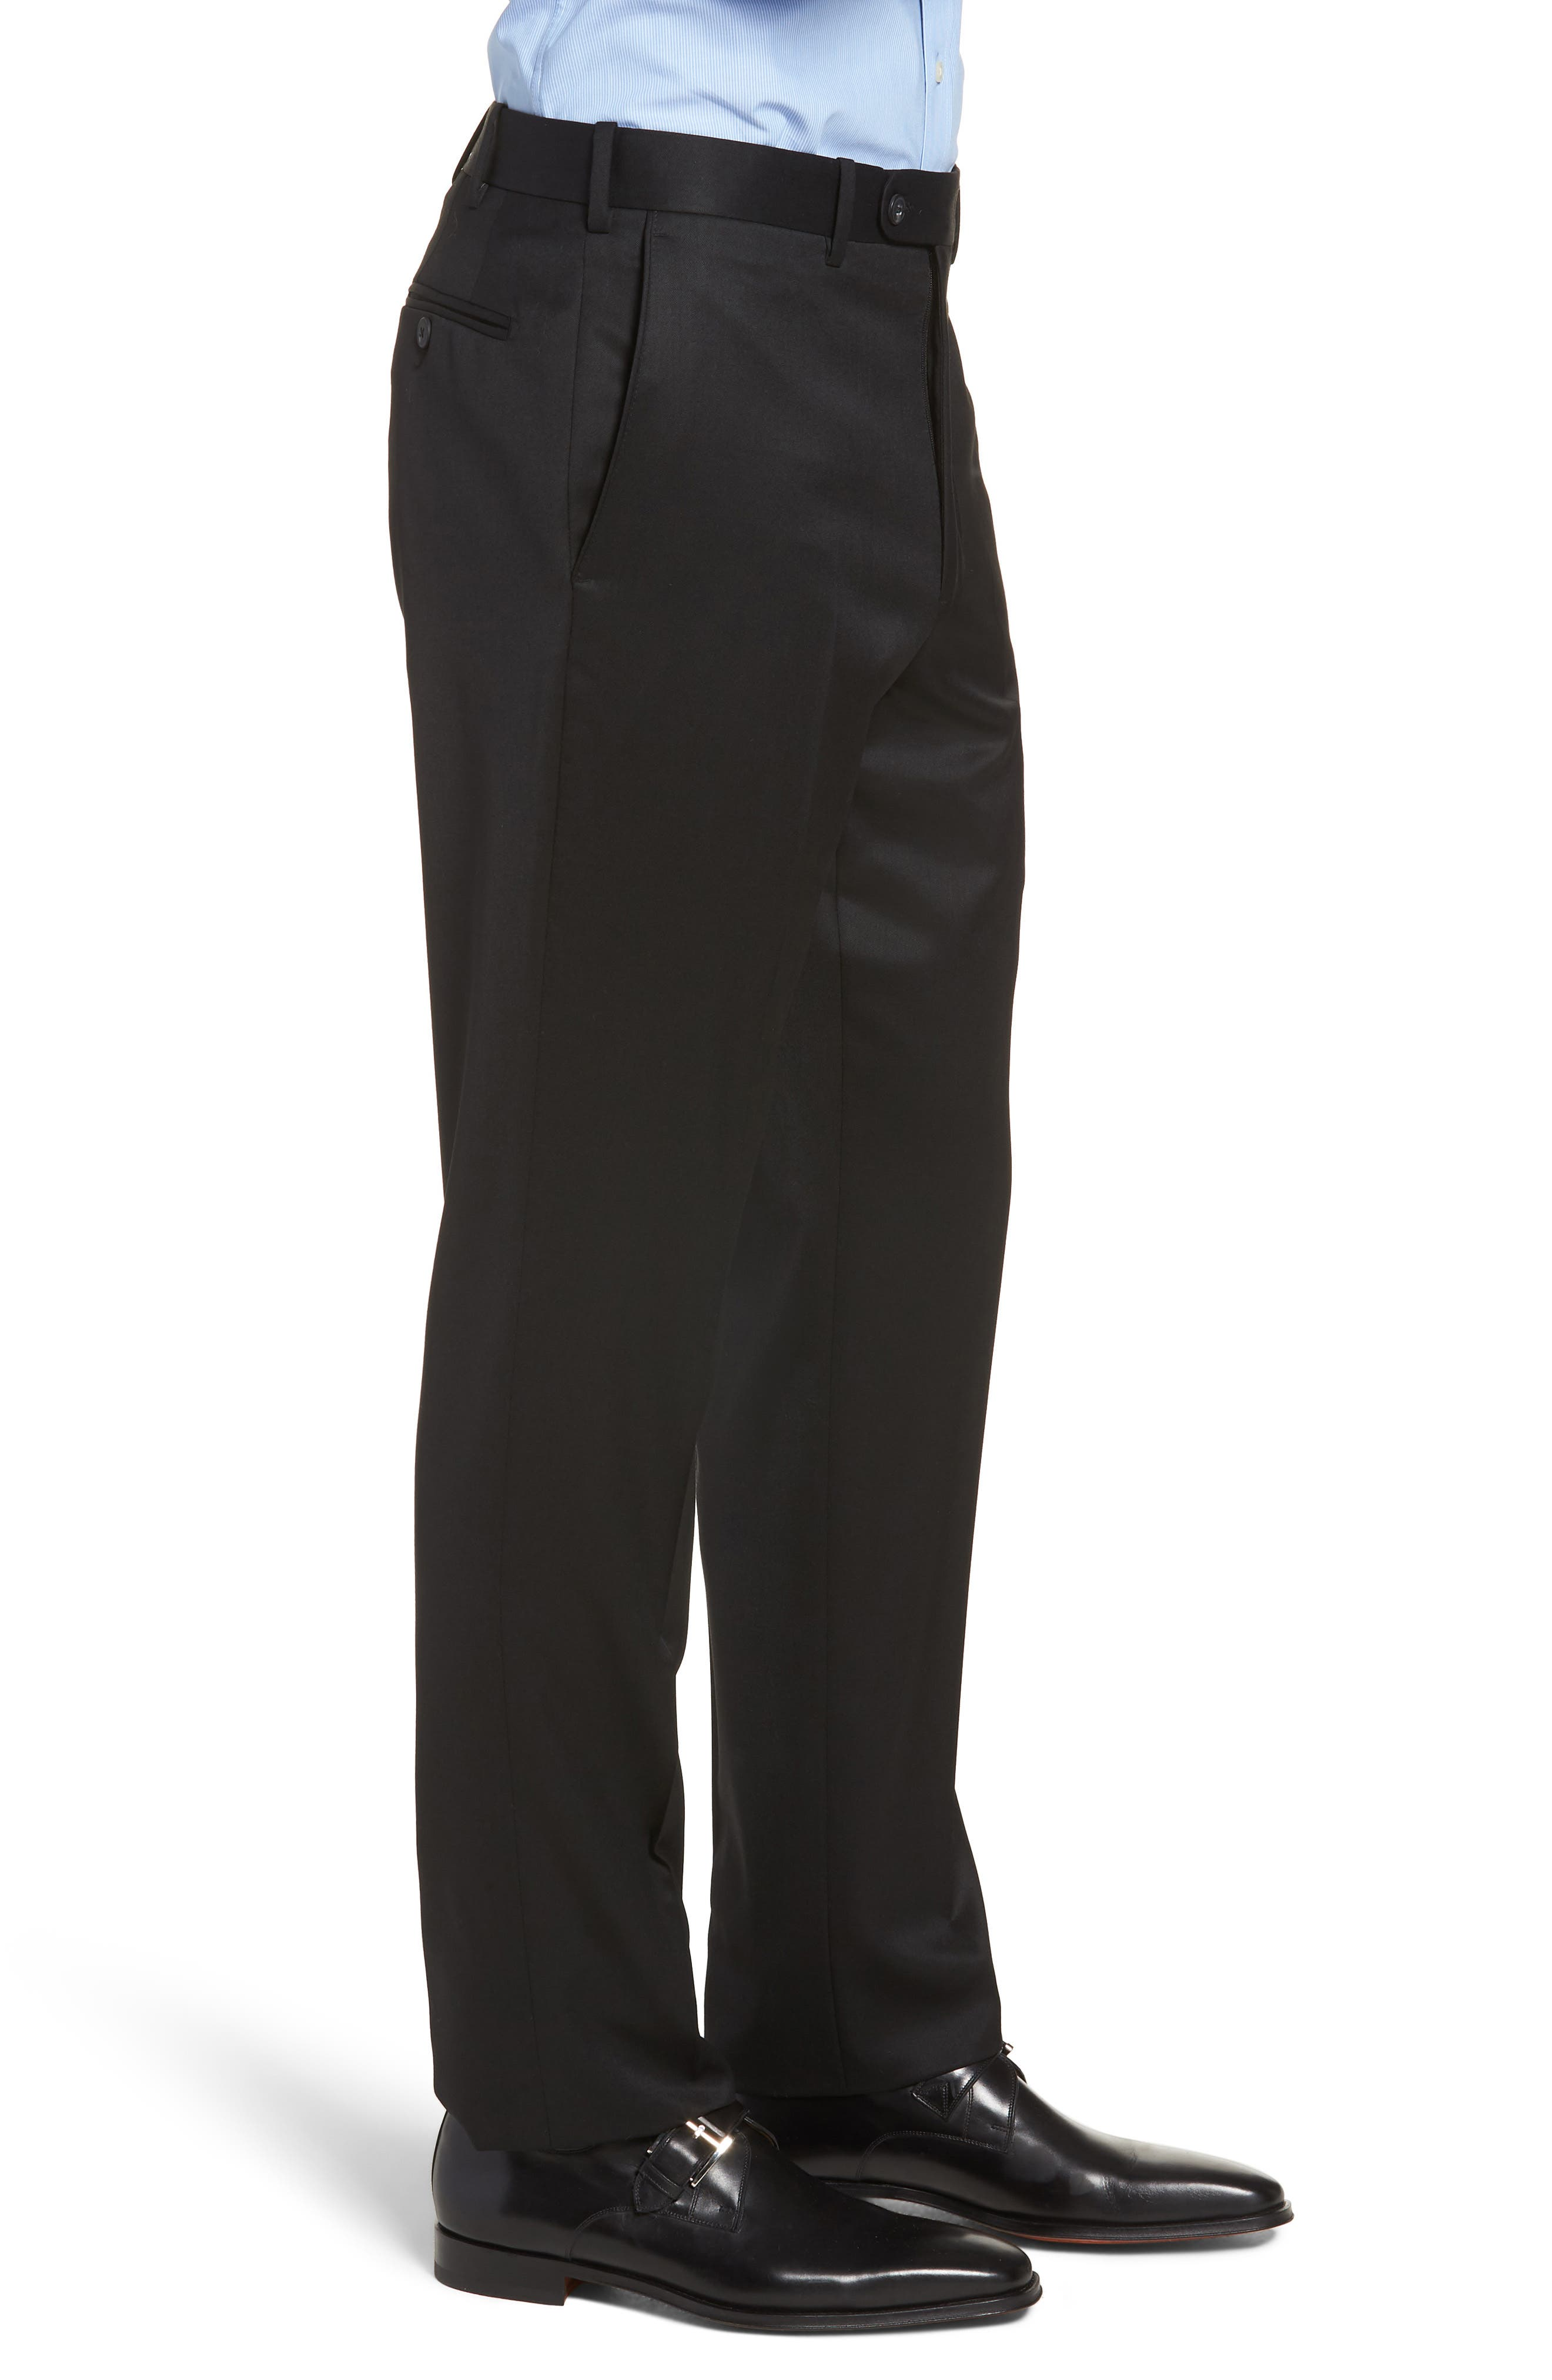 Torino Traditional Fit Flat Front Solid Trousers,                             Alternate thumbnail 3, color,                             BLACK